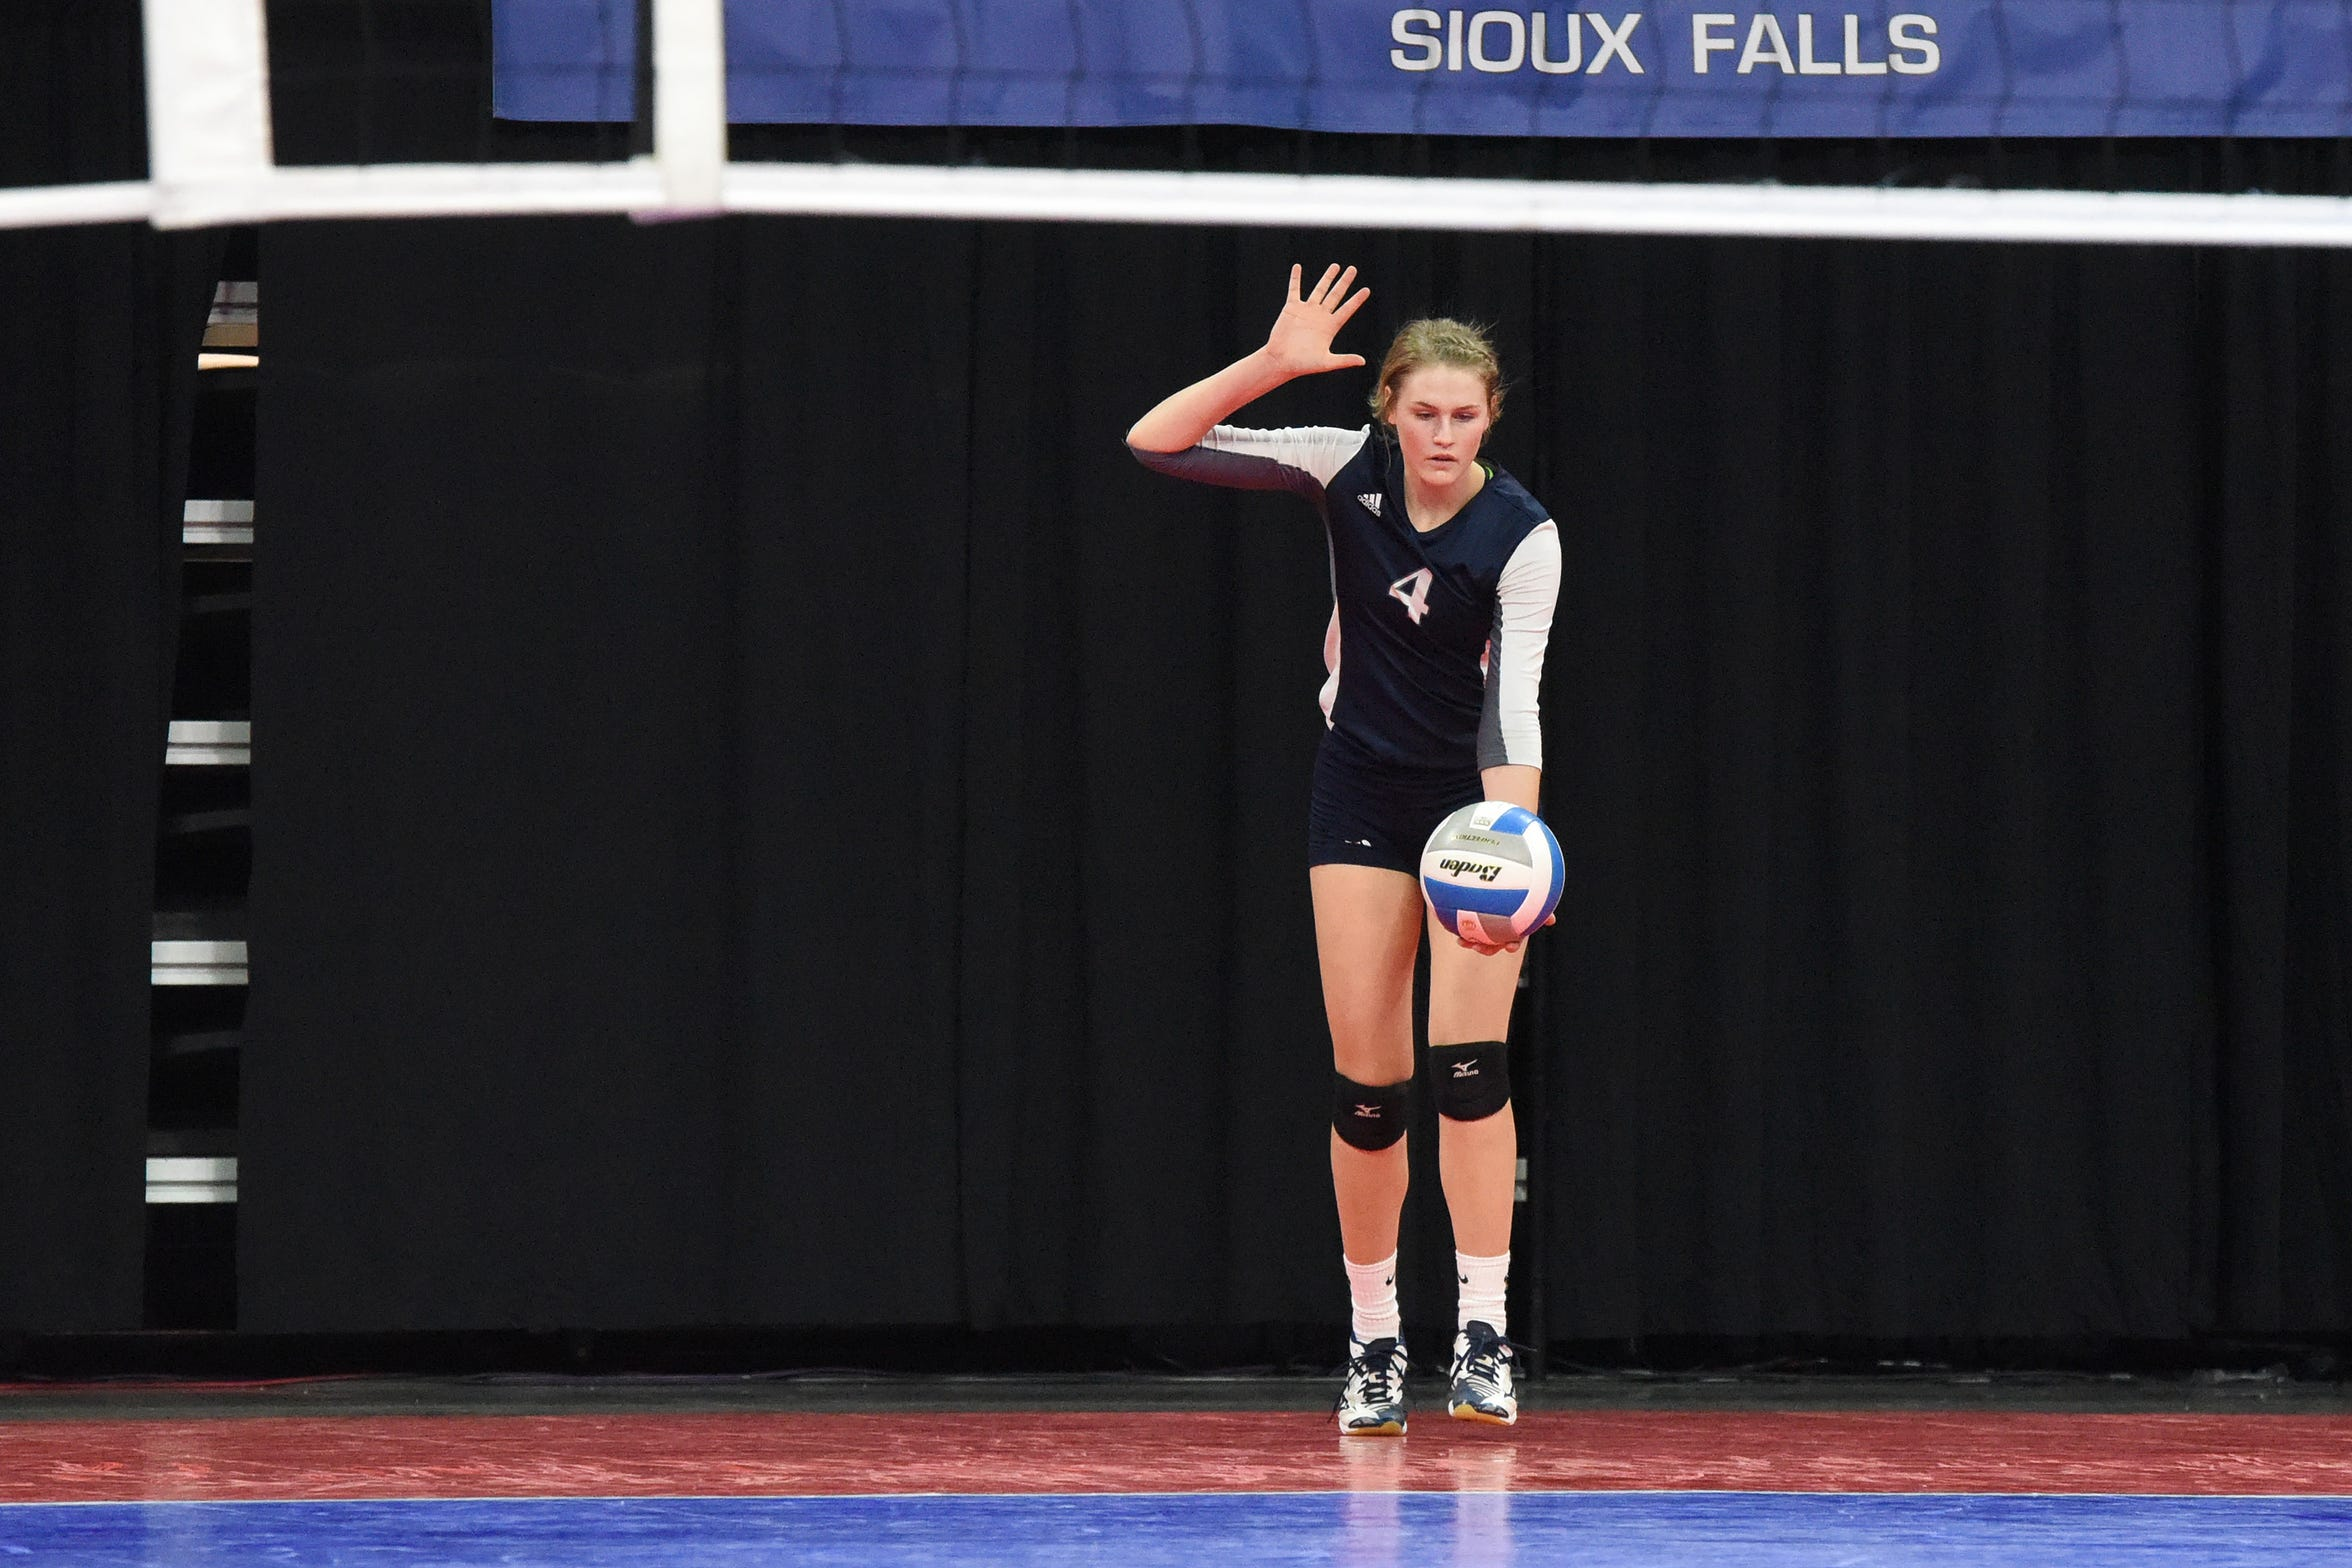 Burke's Taylee Indahl (4) prepares to serve the ball during a match against Ethan, Friday, Nov. 16, 2018, at the Denny Sanford Premier Center in Sioux Falls, S.D.